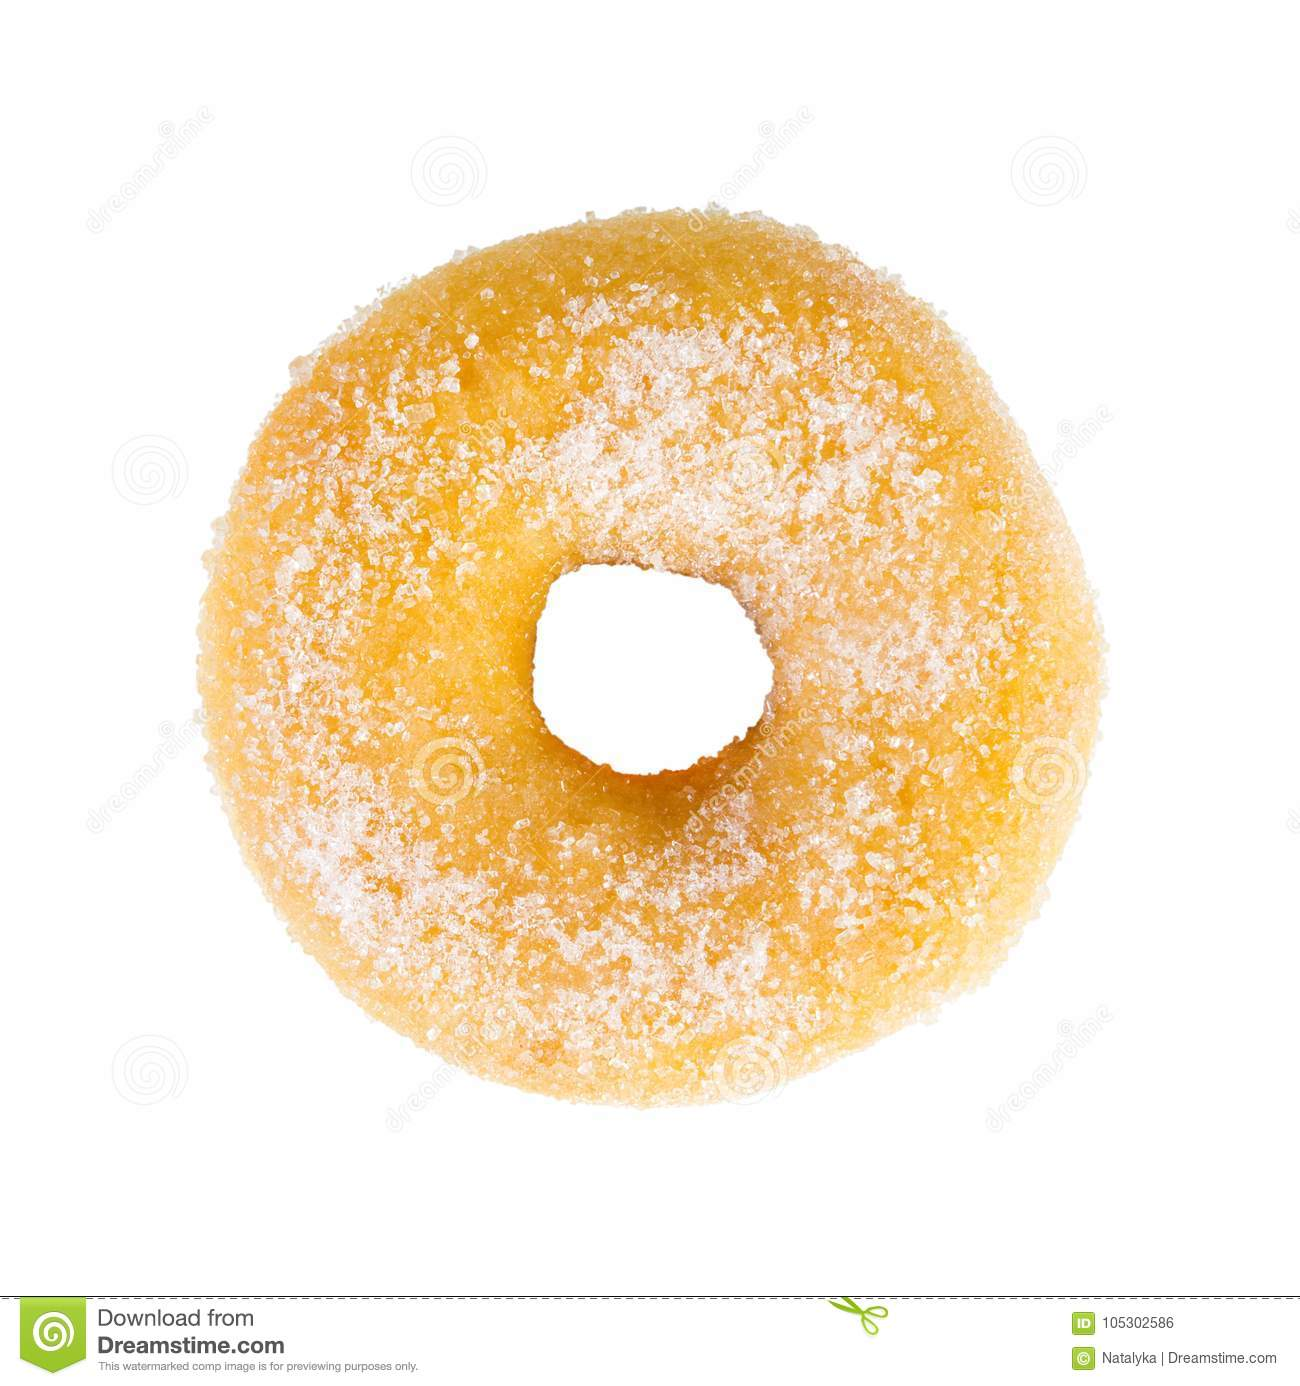 Sugared sweet donut